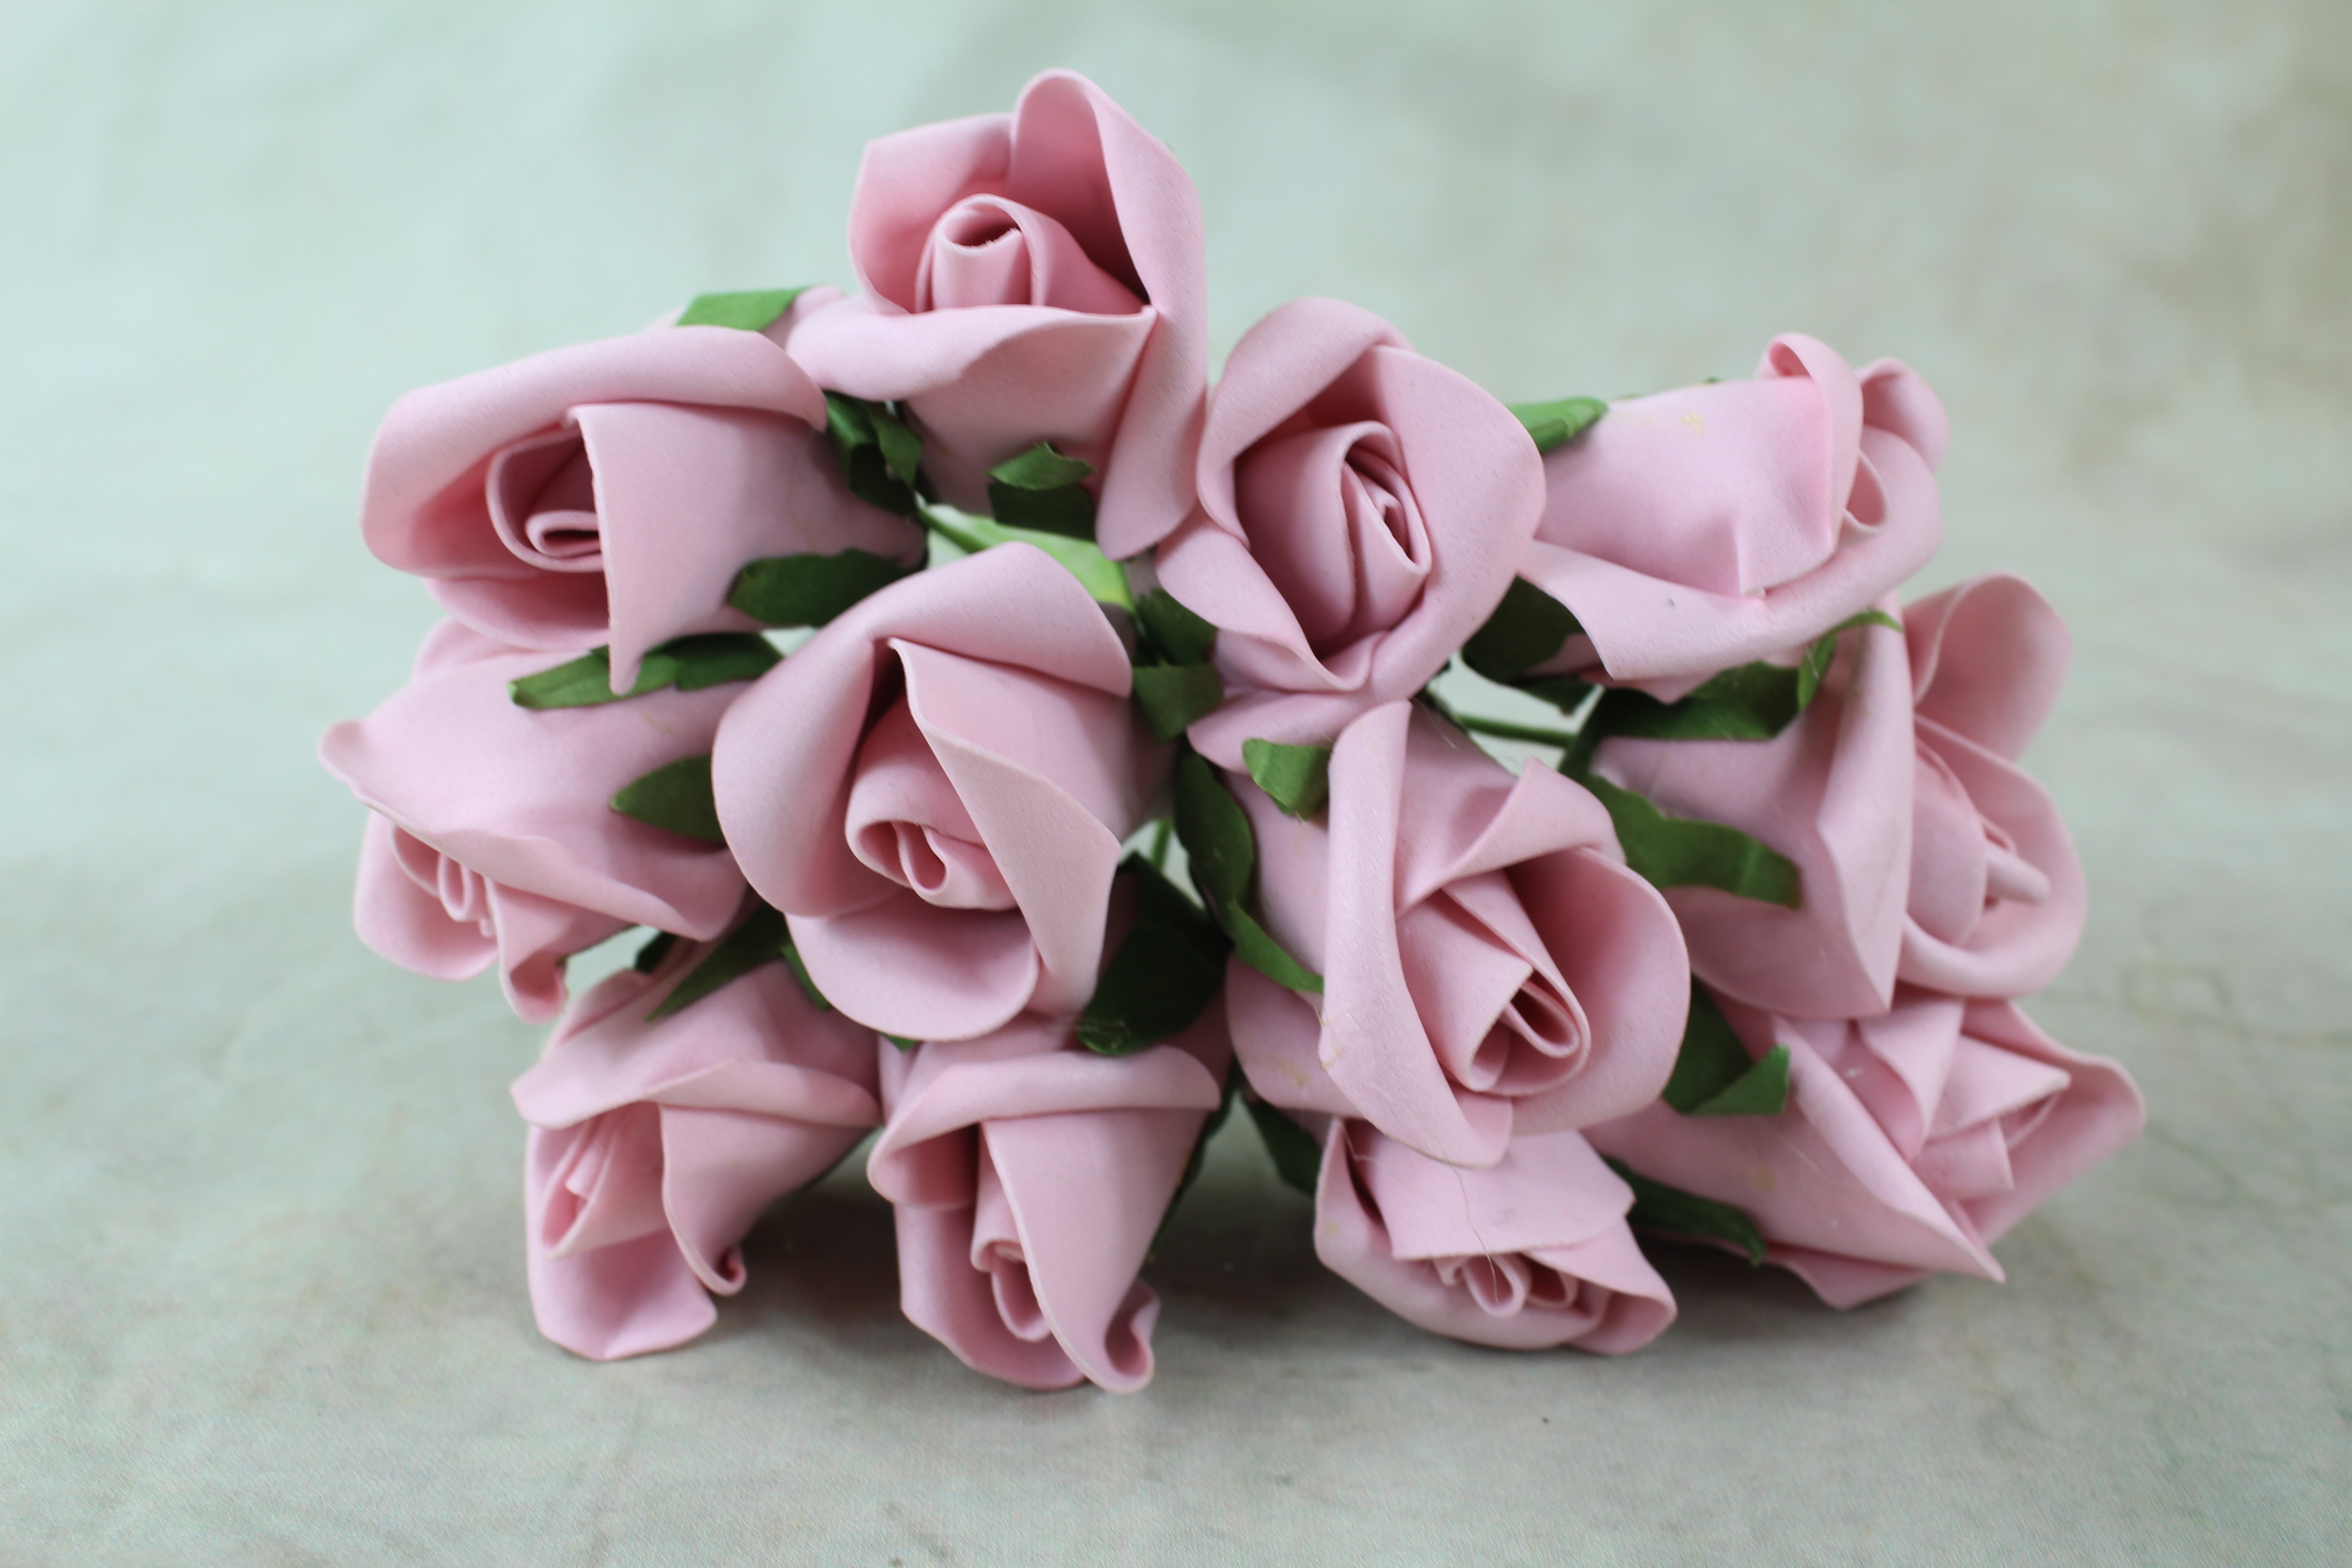 12 x Small Rolled Foam Roses